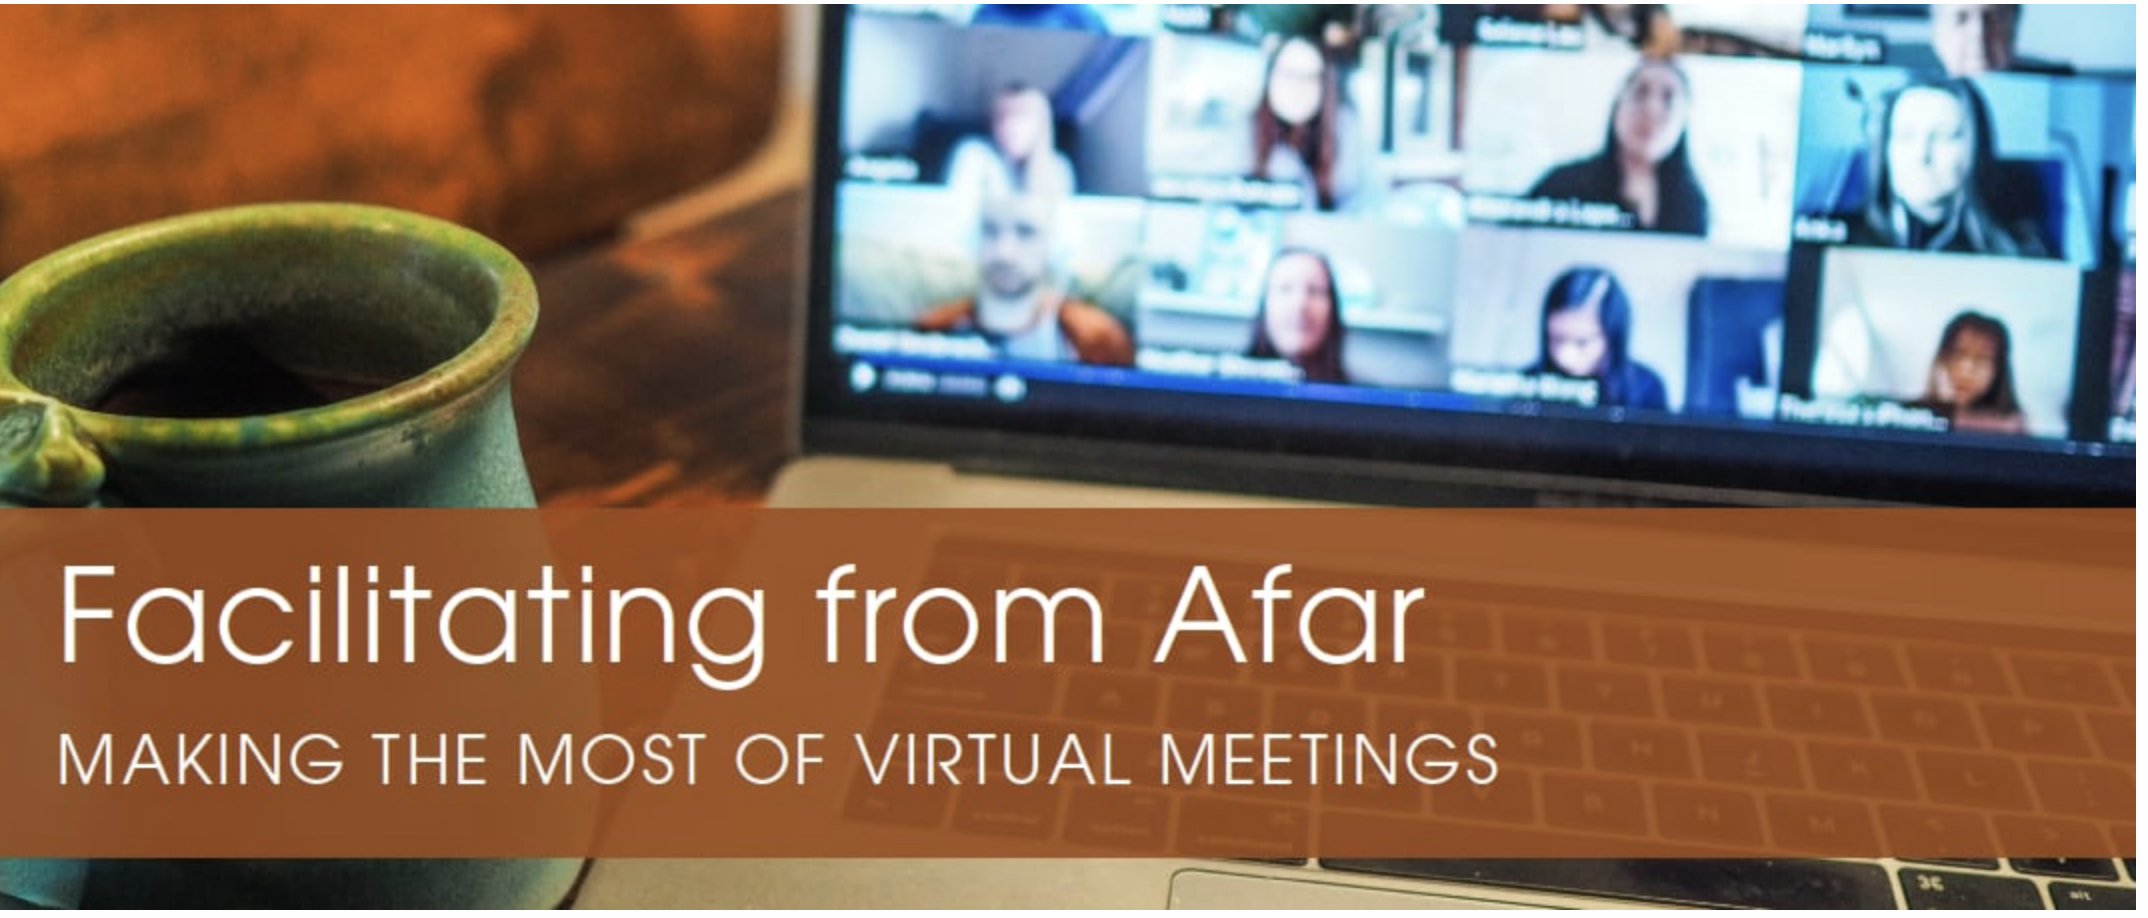 Tools&tips for virtual meetings